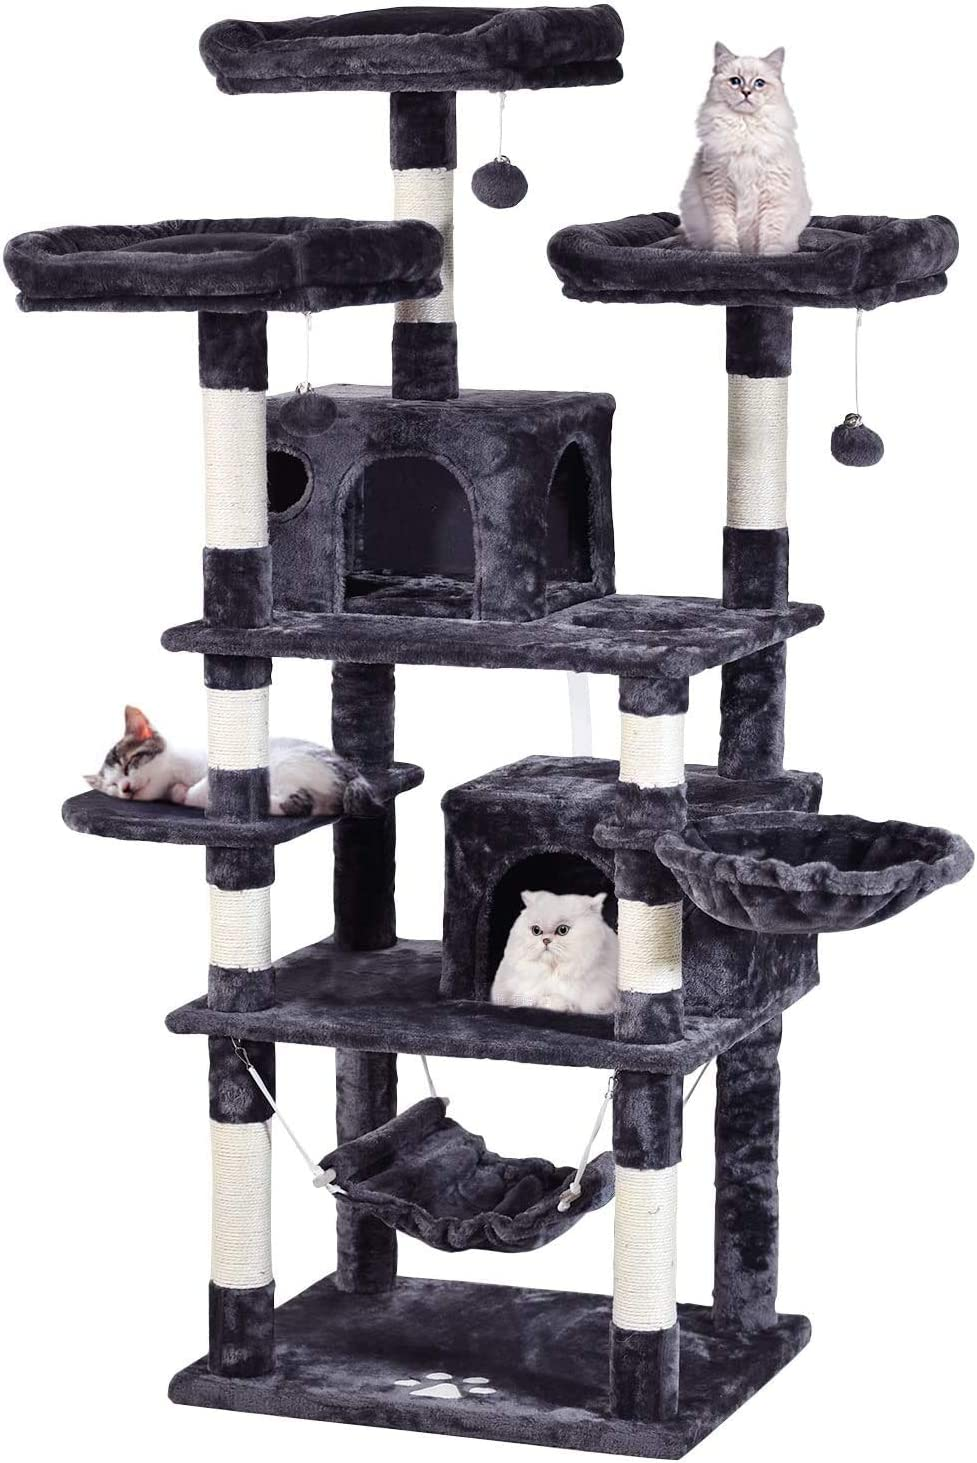 JISSBON 49'' Multi-Level Cat Tree Condo, Cat Activity Center Play Tower Furniture with Sisal Scratching Posts 2Pcs Plush Perches 2Pcs Cat Caves & Basket for Kittens Adult Large Cats